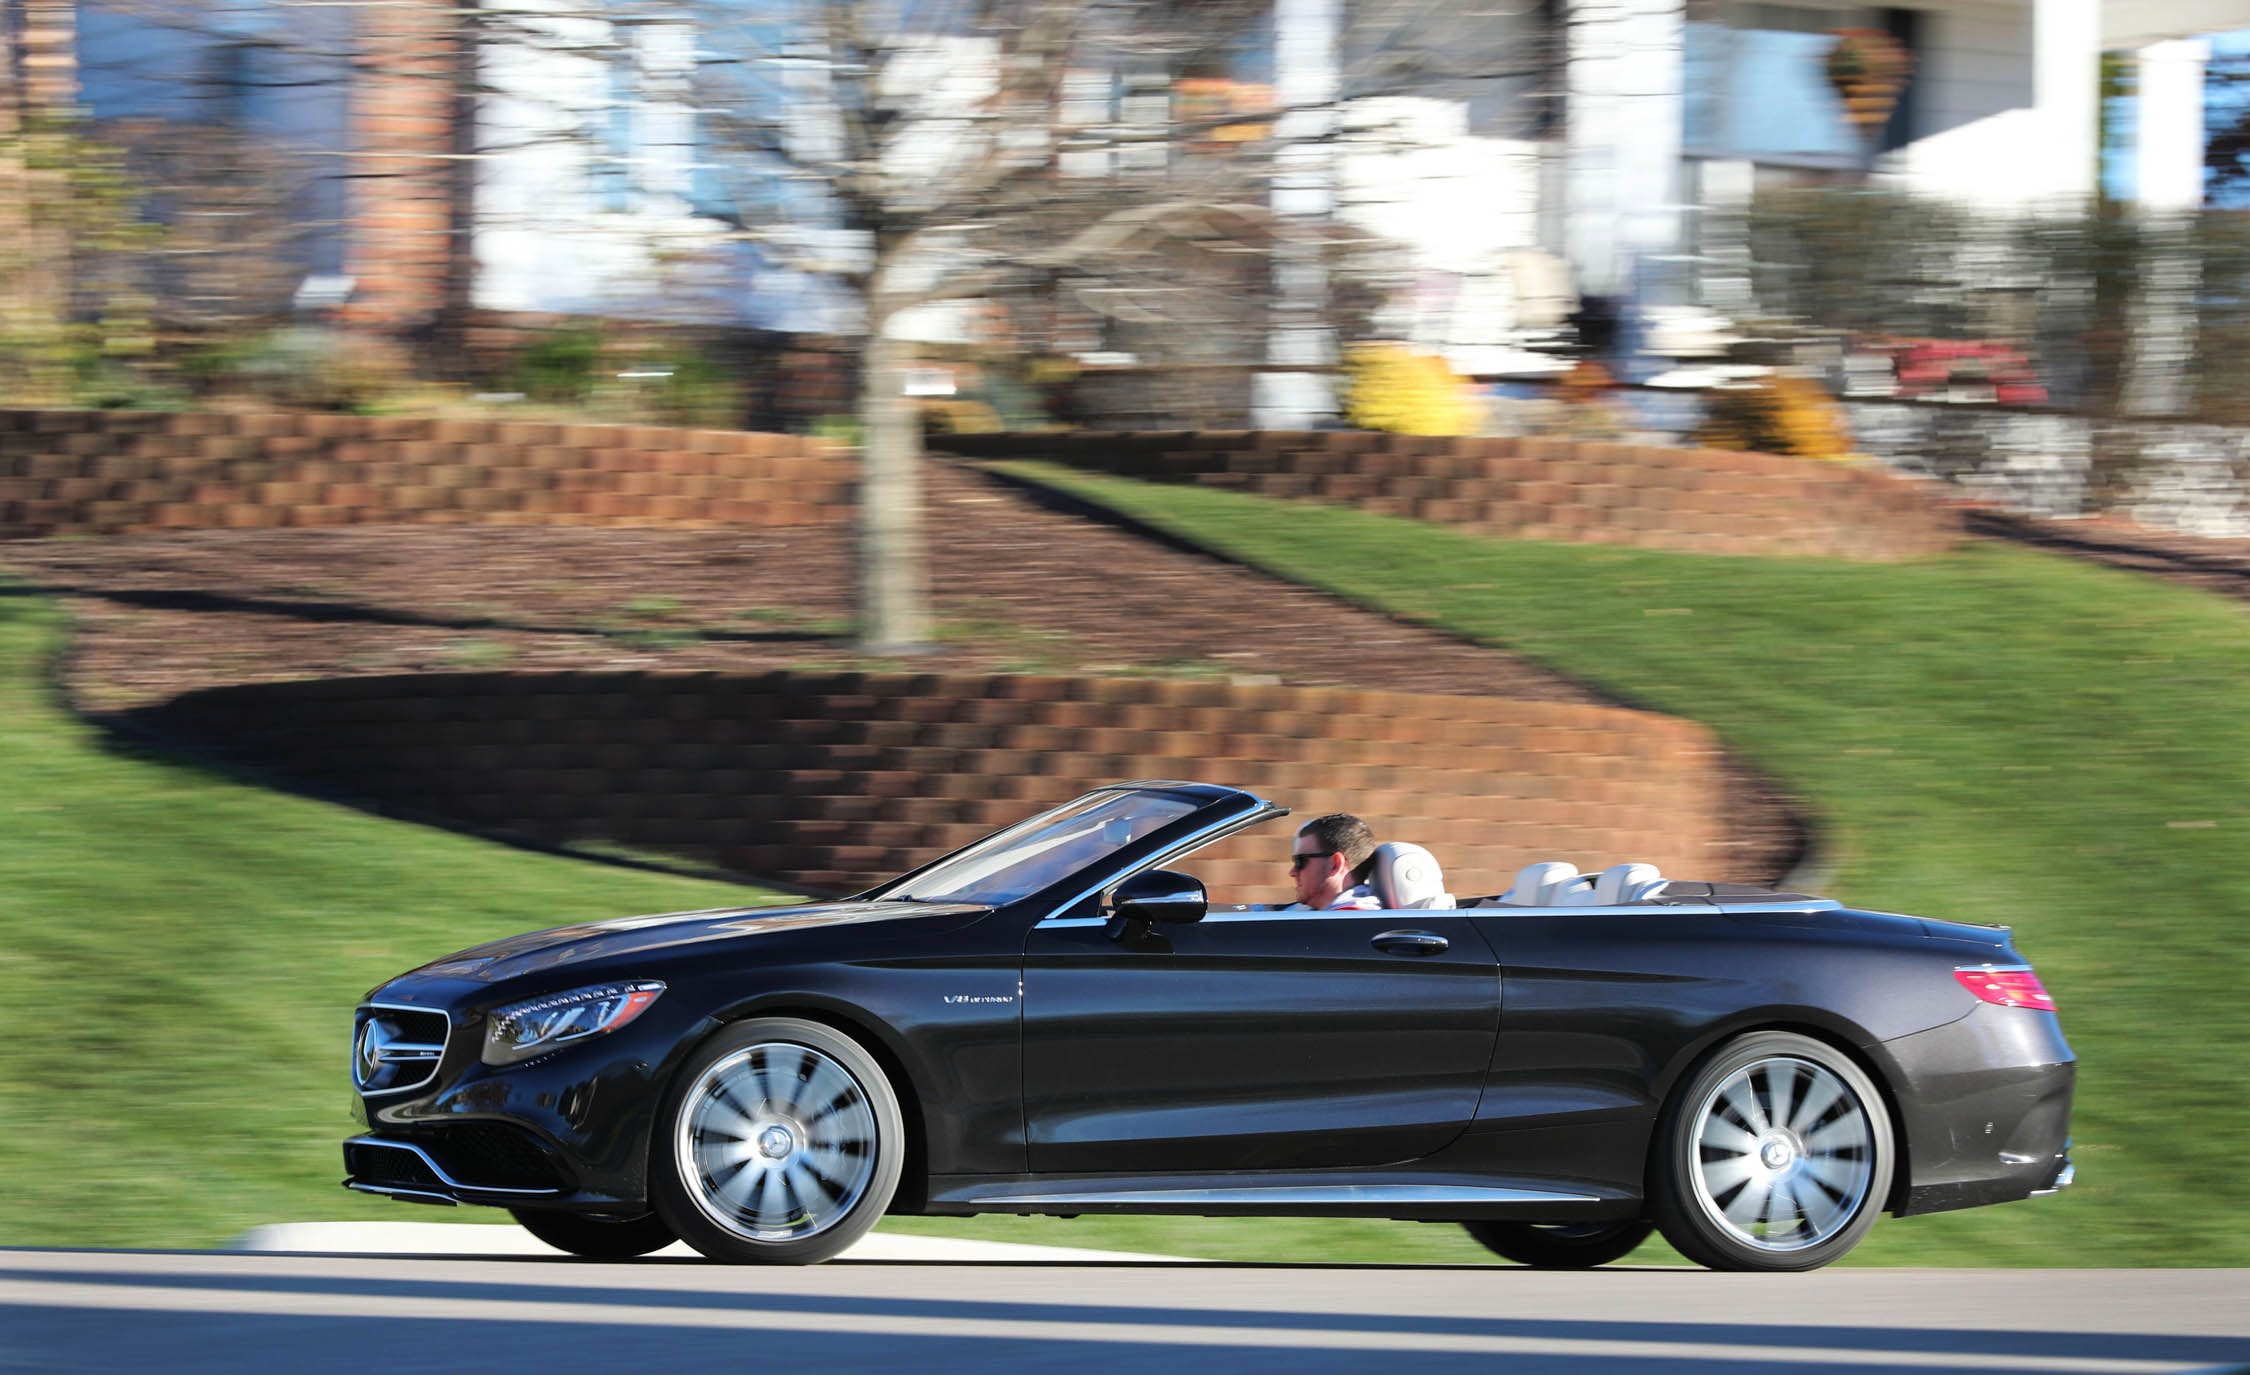 2017 Mercedes Amg S63 Cabriolet Test Drive Side View (Photo 36 of 38)